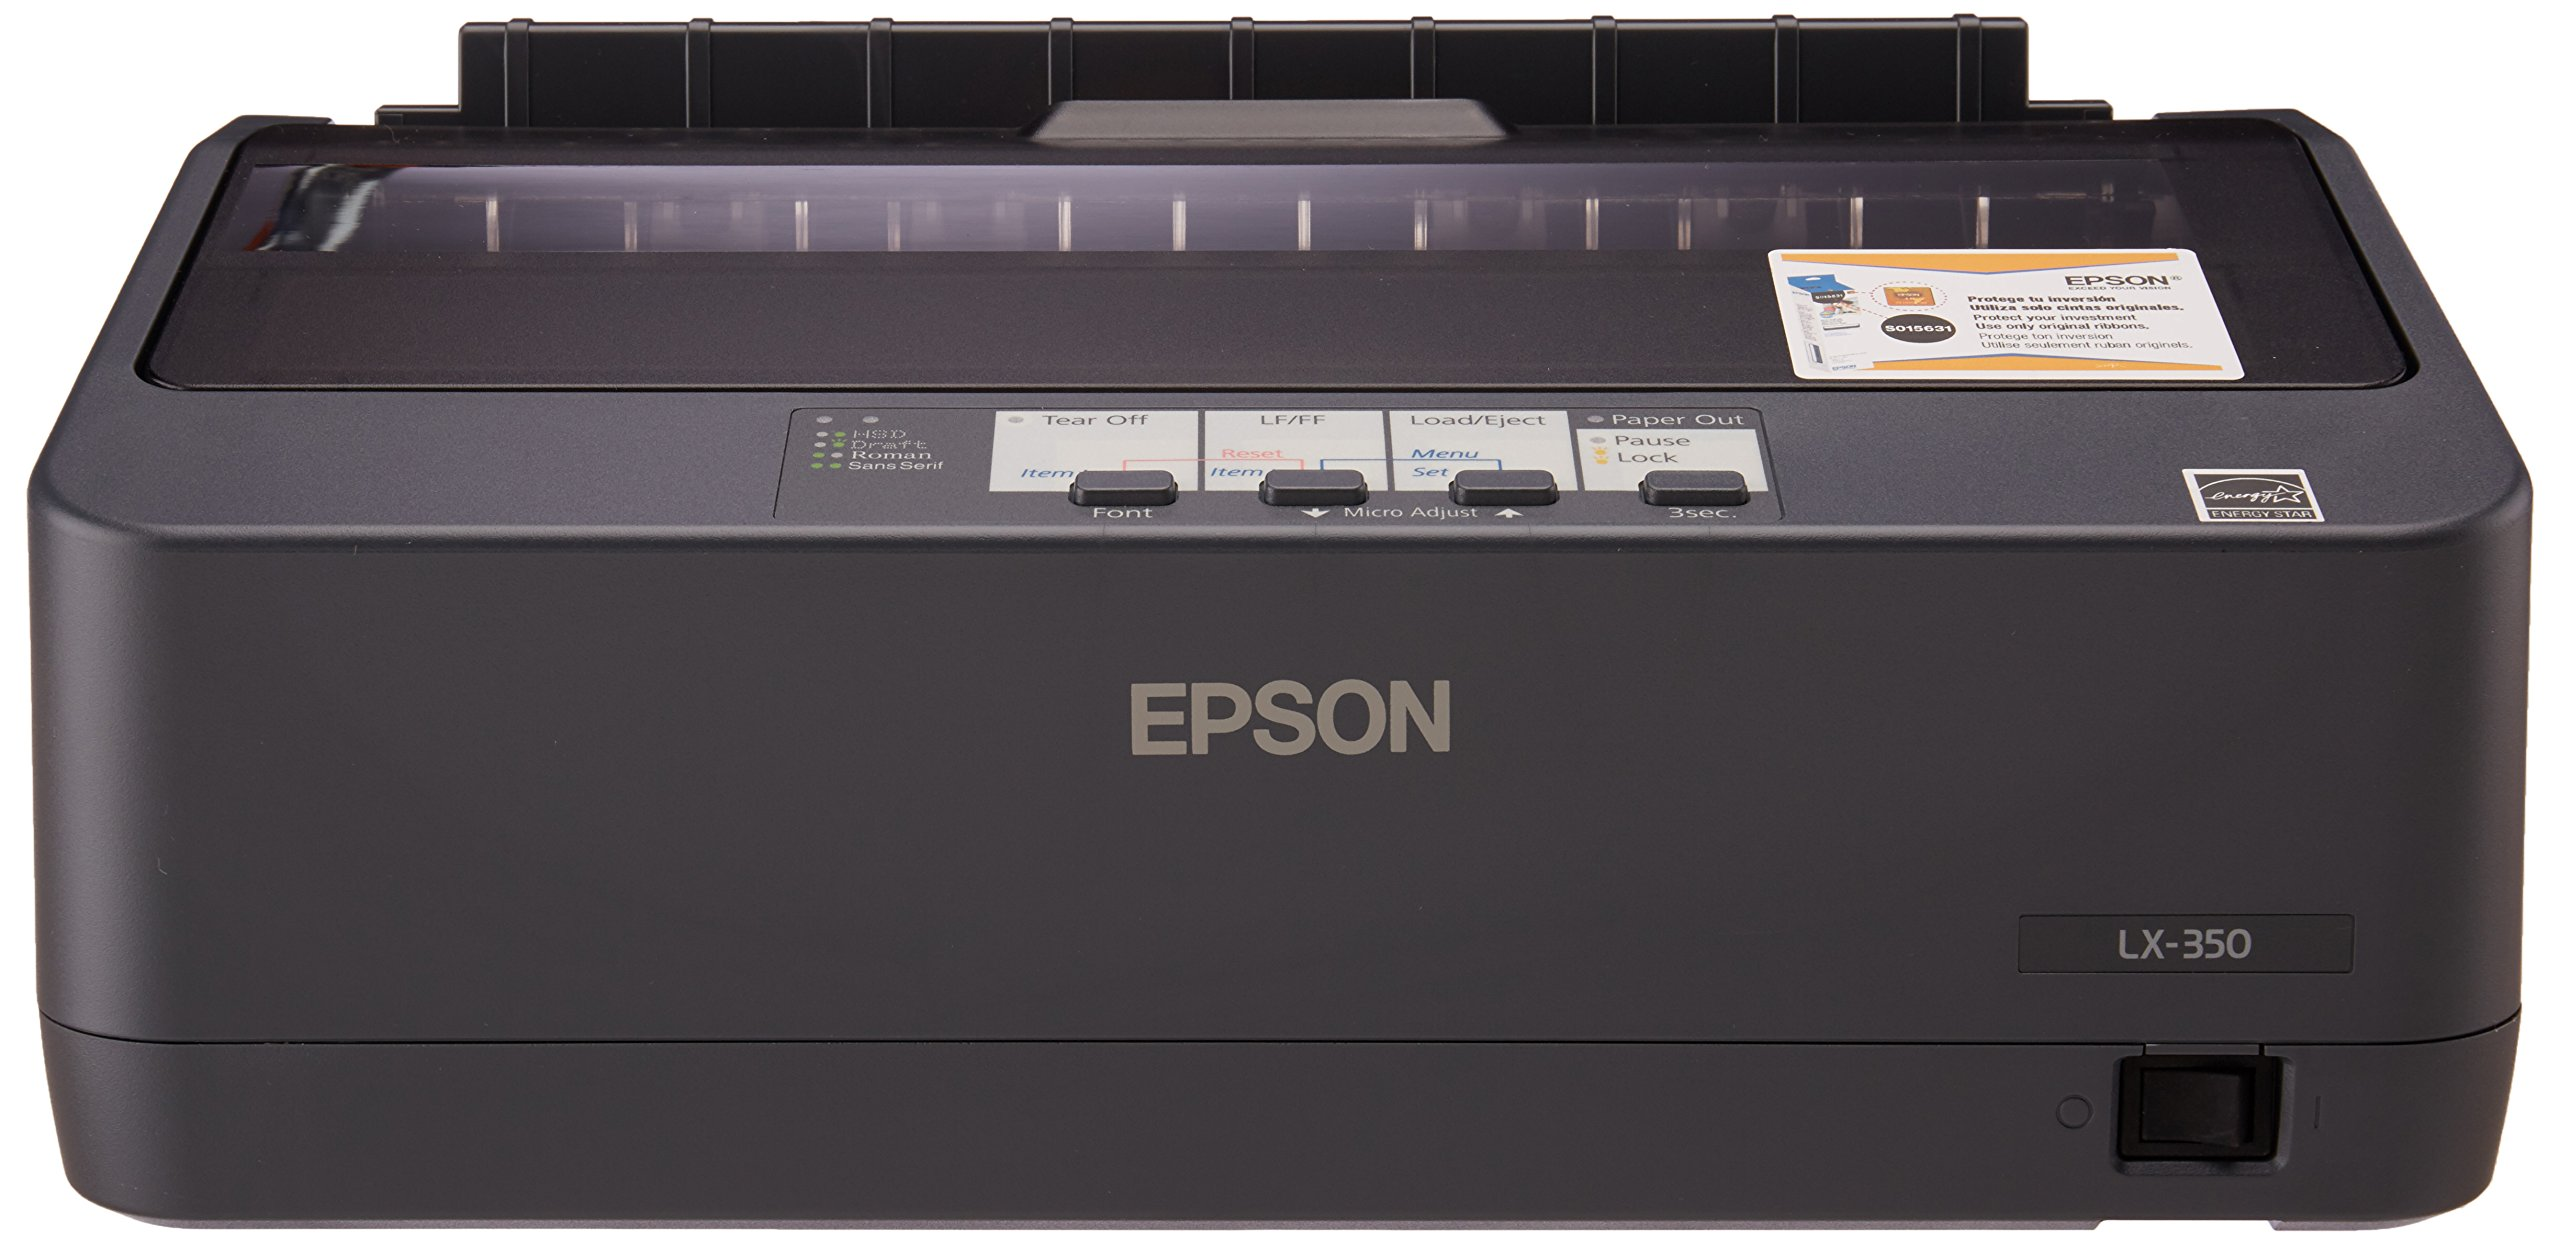 Epson C11CC24001 Dot Matrix Printer by Epson